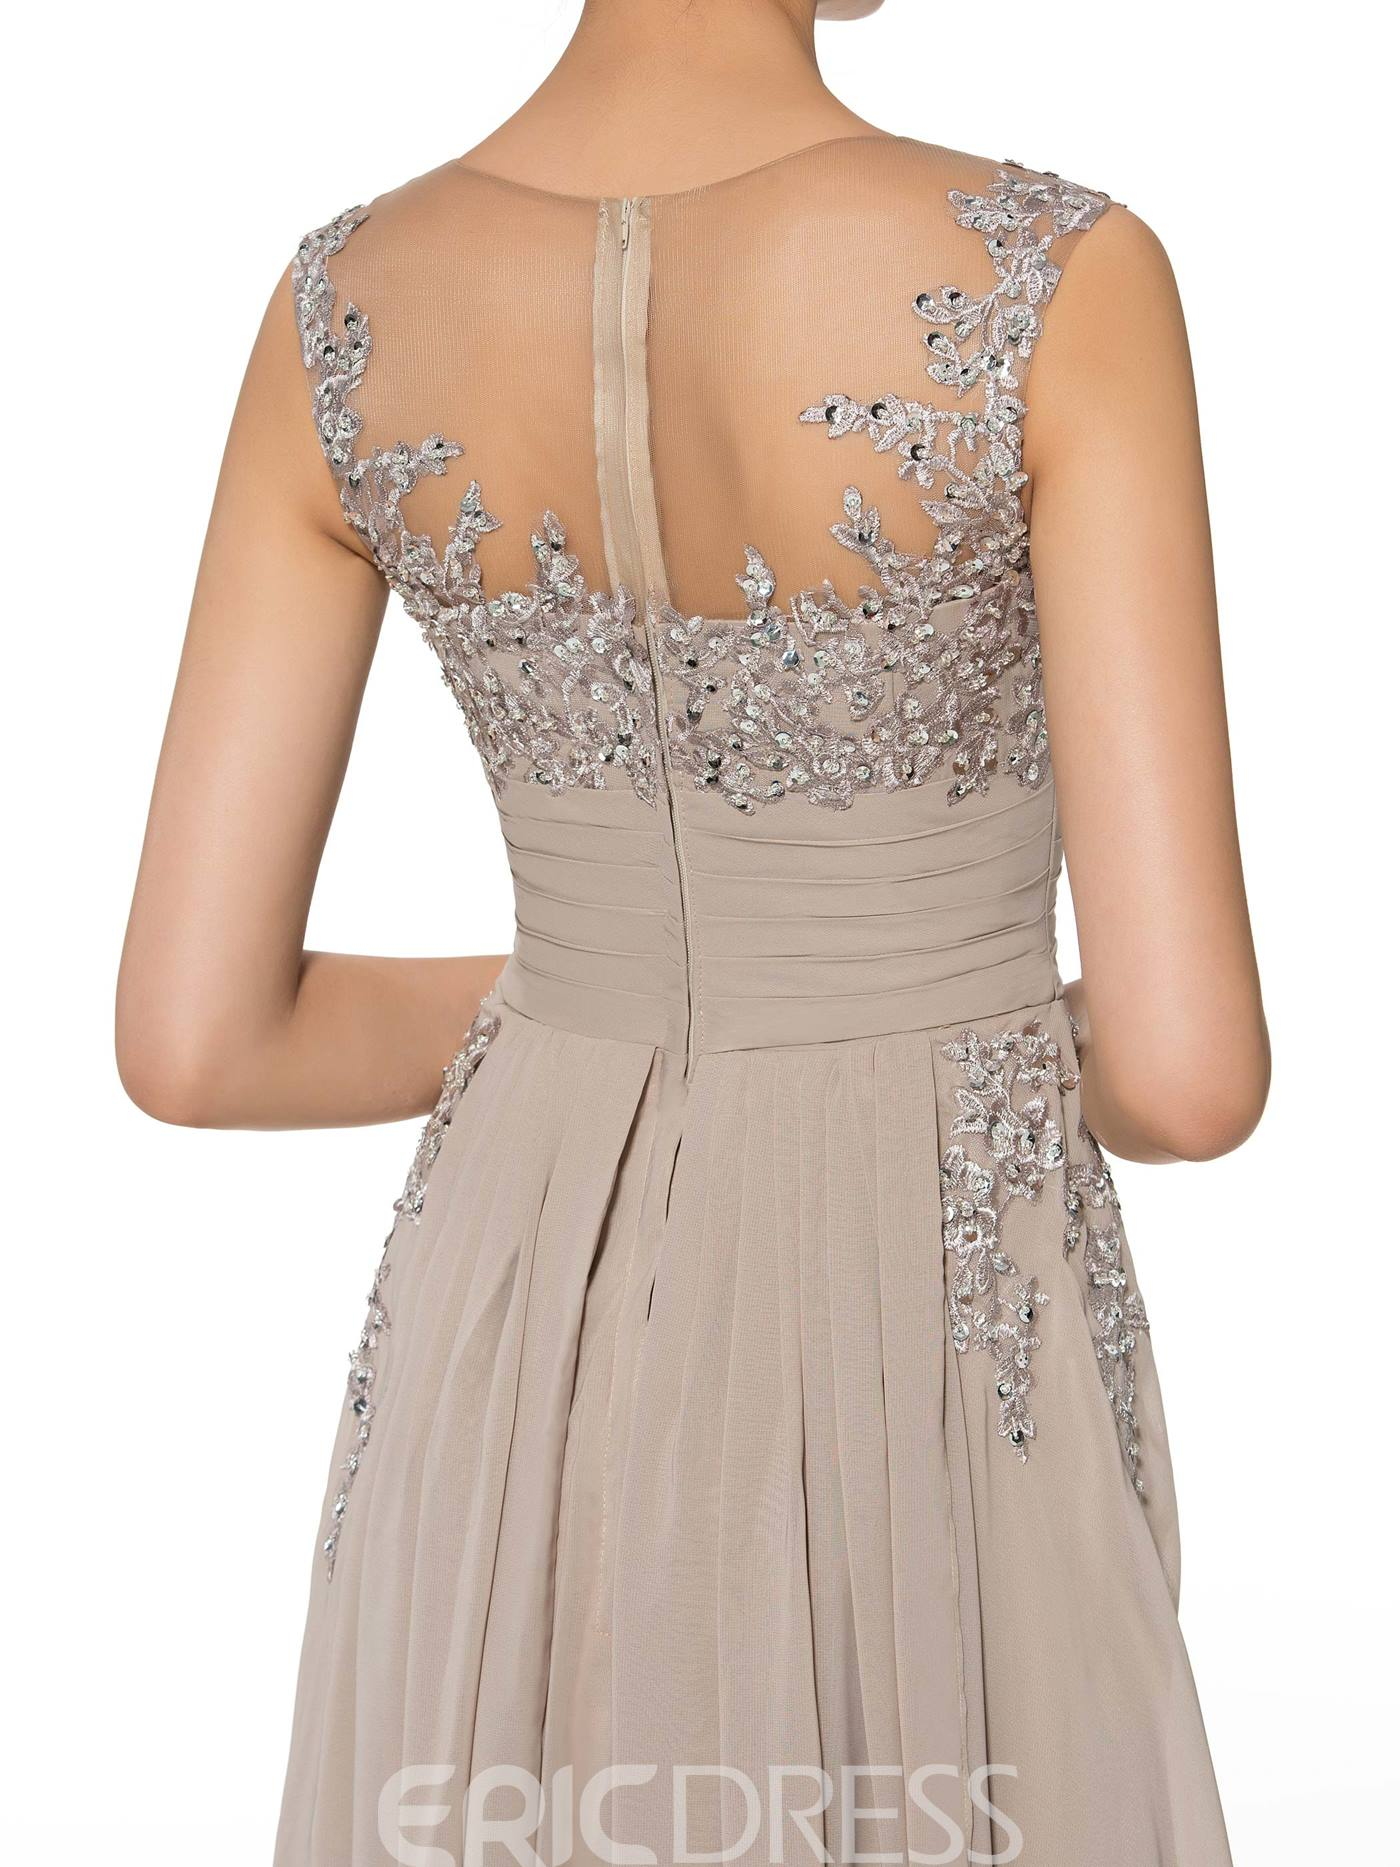 Ericdress A Line Long Jewel Beading Appliques Mother of the Bride Dress